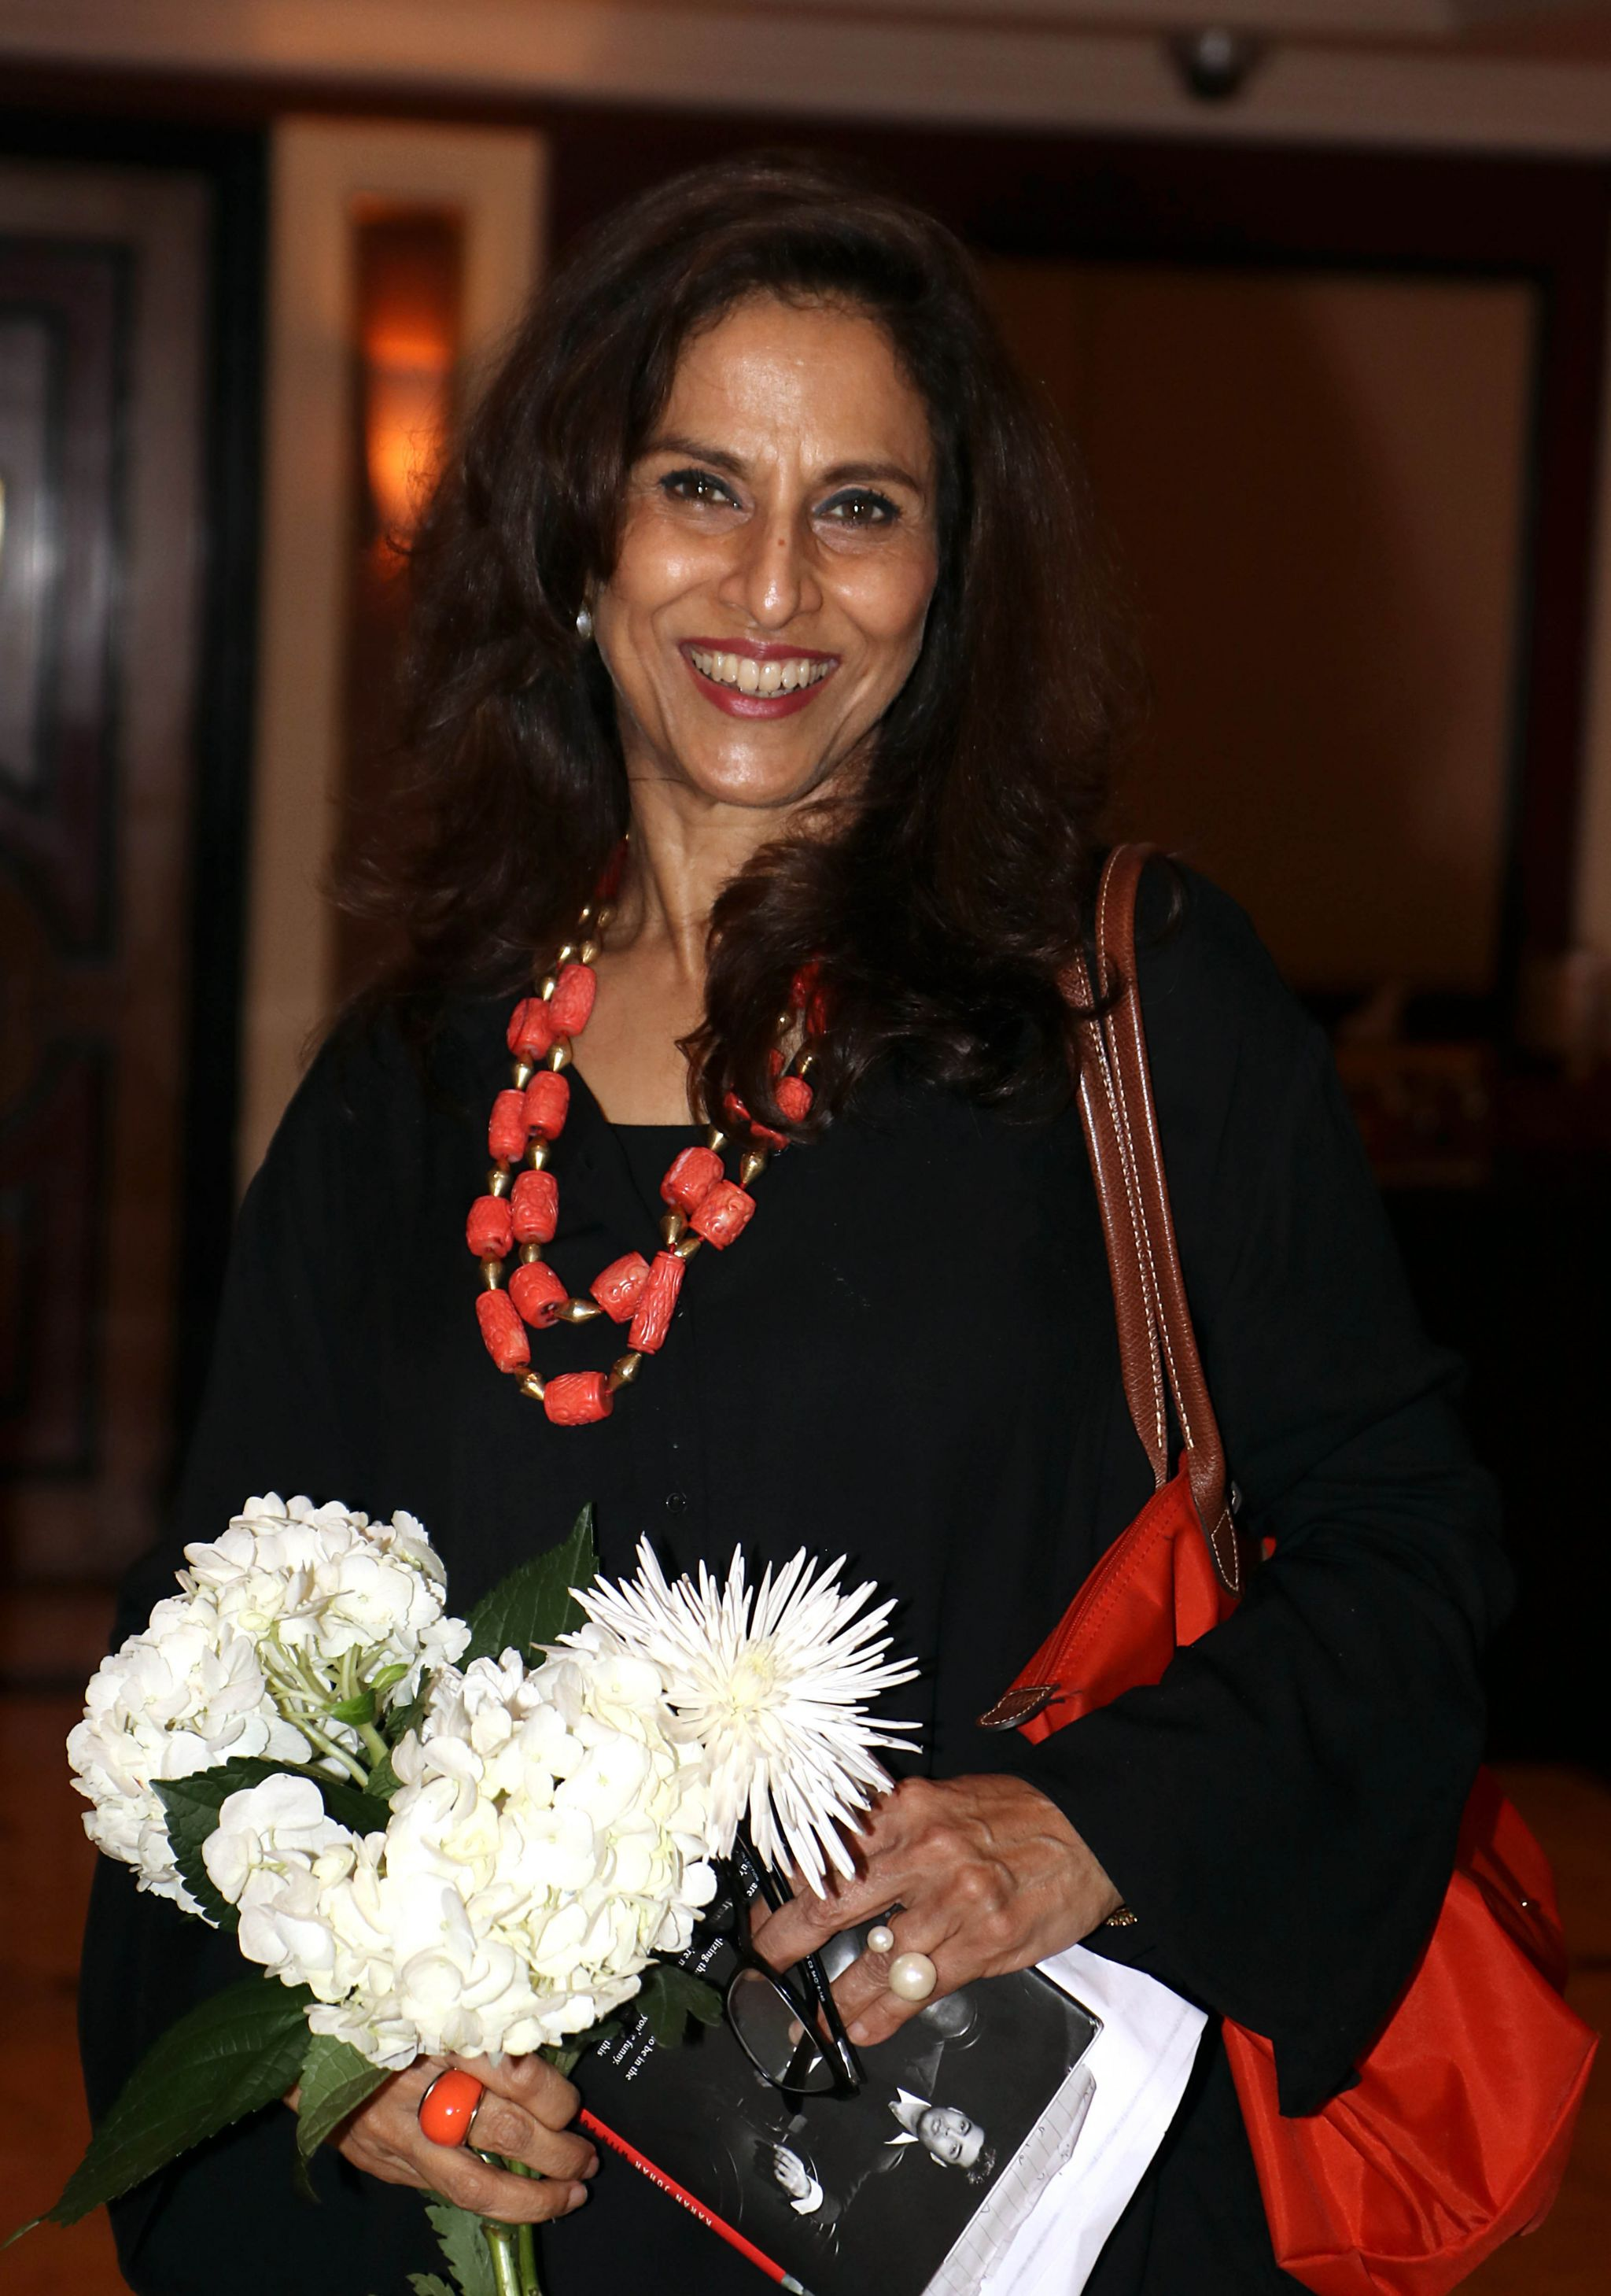 """Indian columnist and novelist Shobhaa De poses for a photograph during a promotional event for the book """"An Unsuitable Boy"""" written by film director and producer Karan Johar and Poonam Saxena in Mumbai on 16 January 2017"""